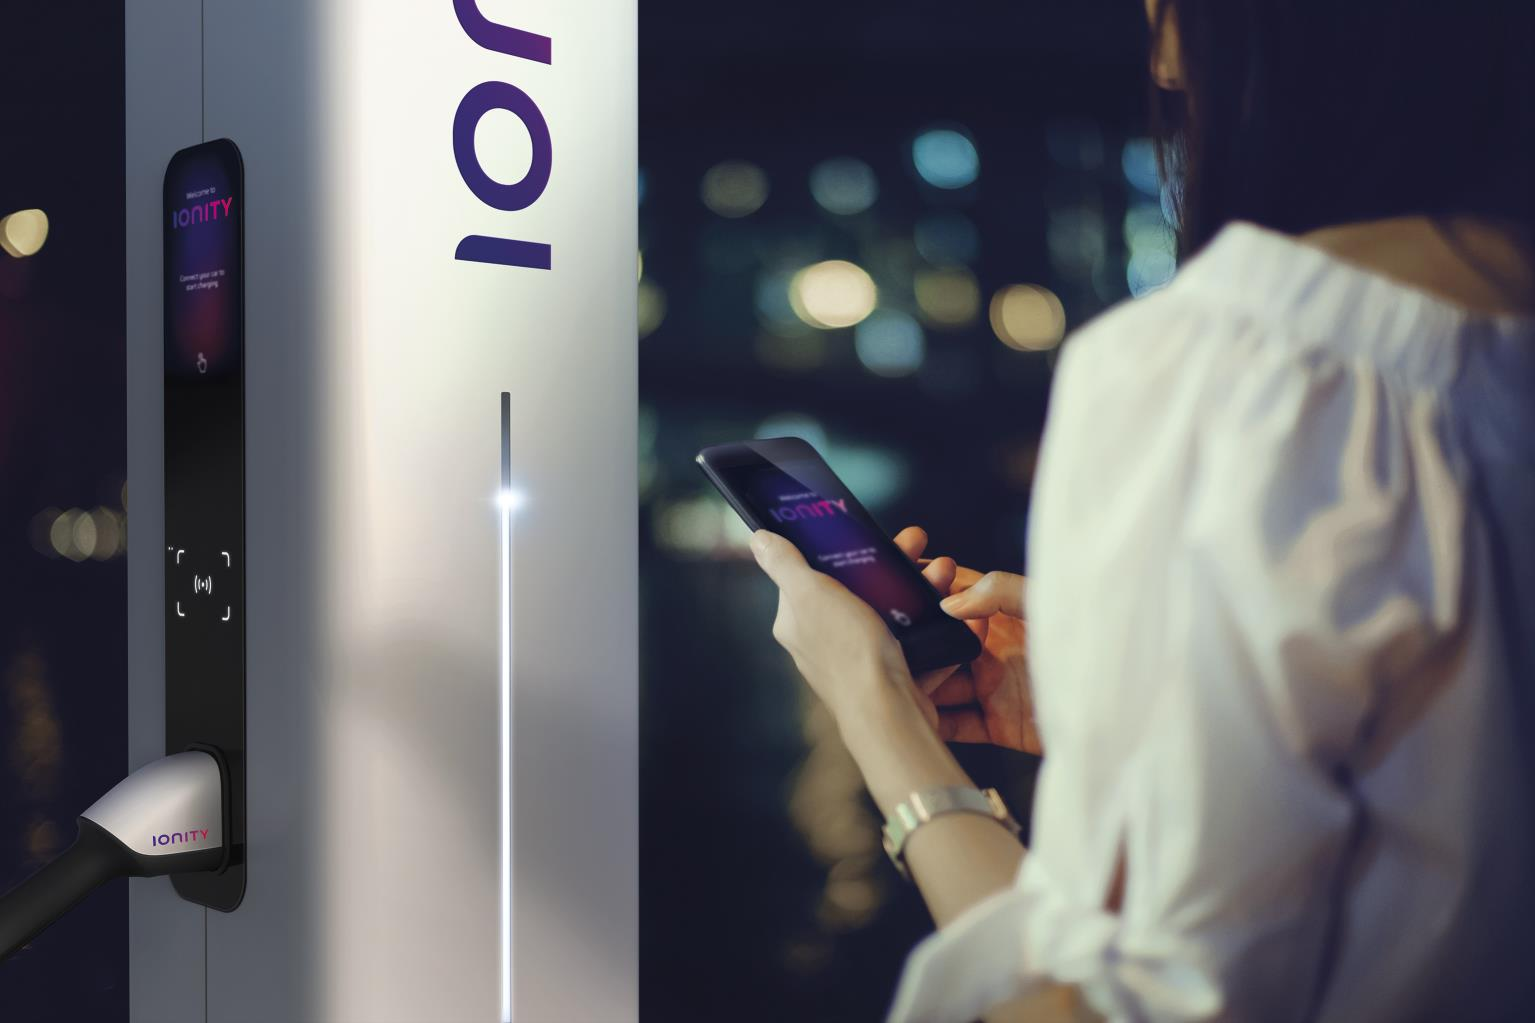 Ionity fast charging